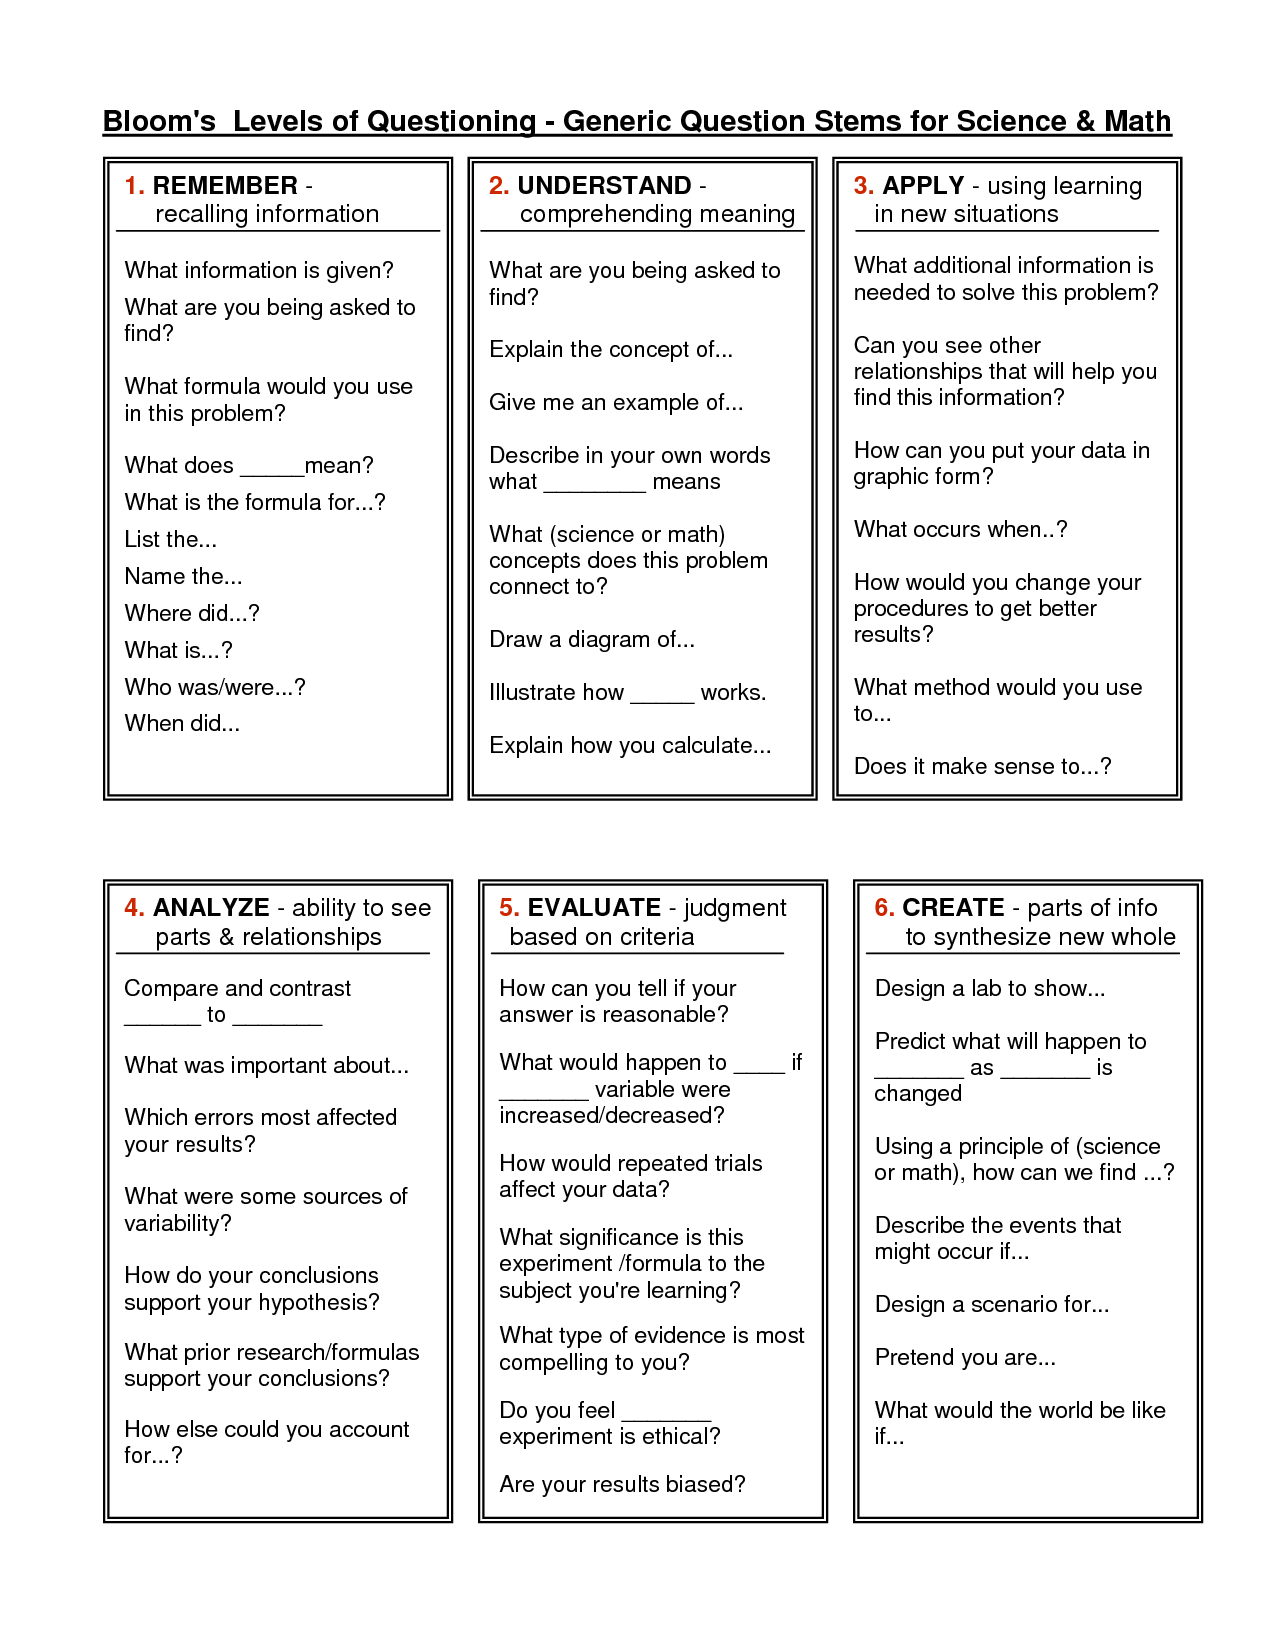 math blooms question stems - Google Search | Asking Question ...